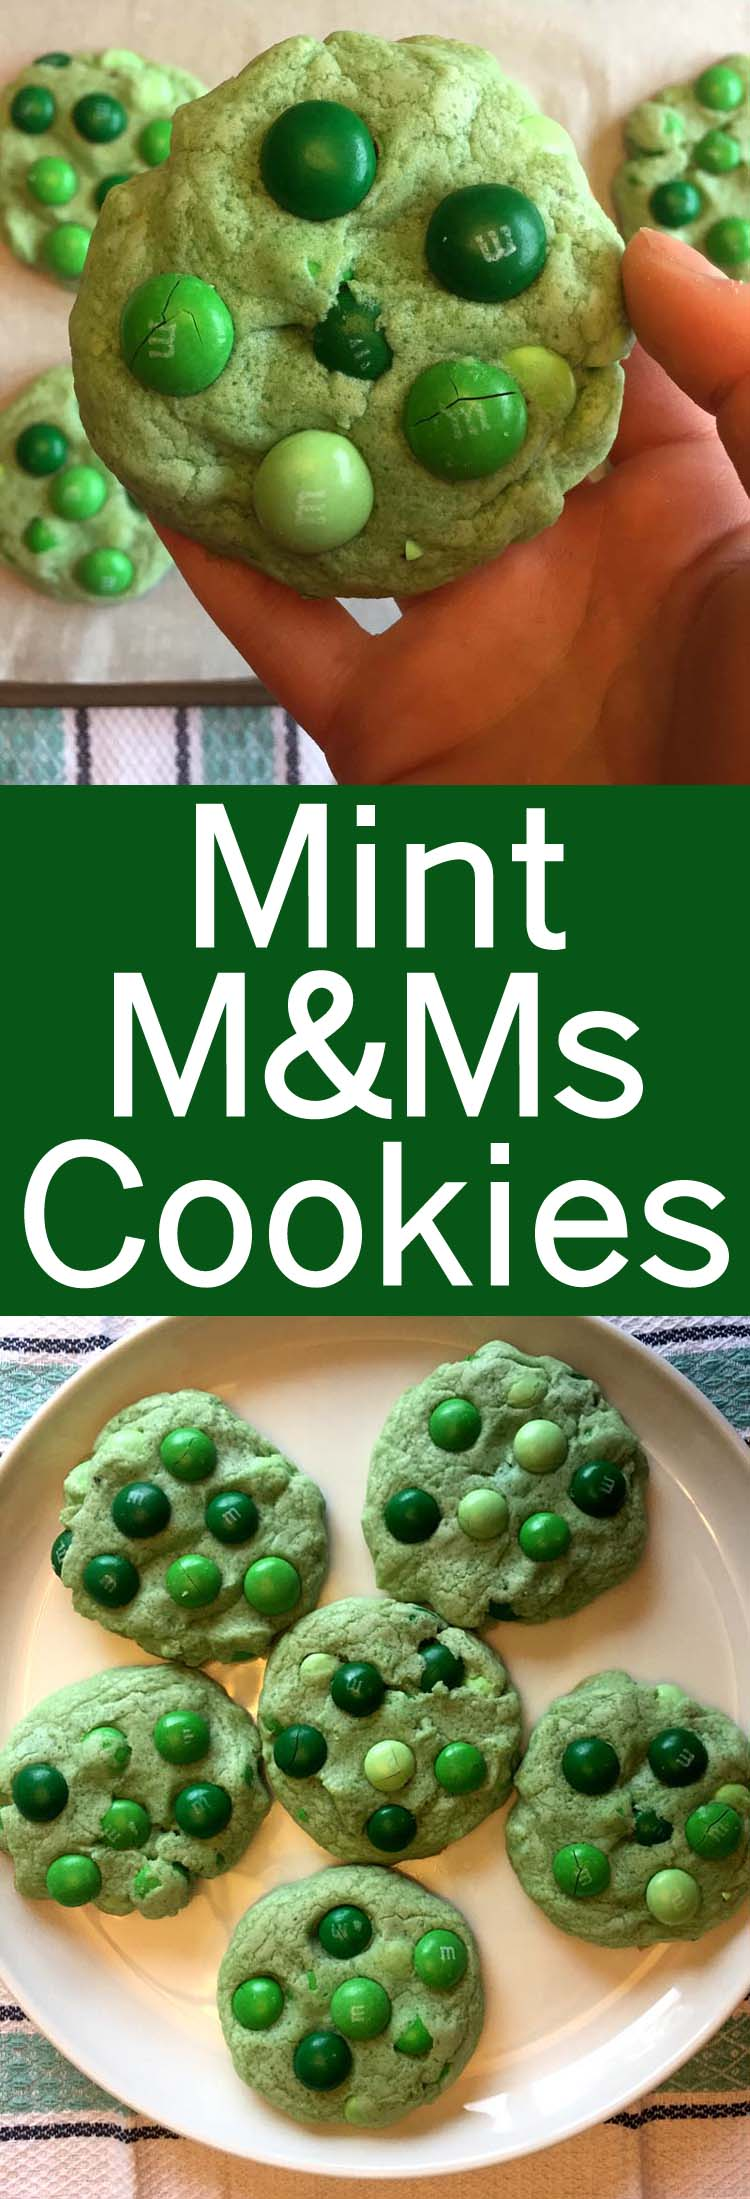 These green mint M&M's cookies are amazing! Perfect for St. Patrick's day!